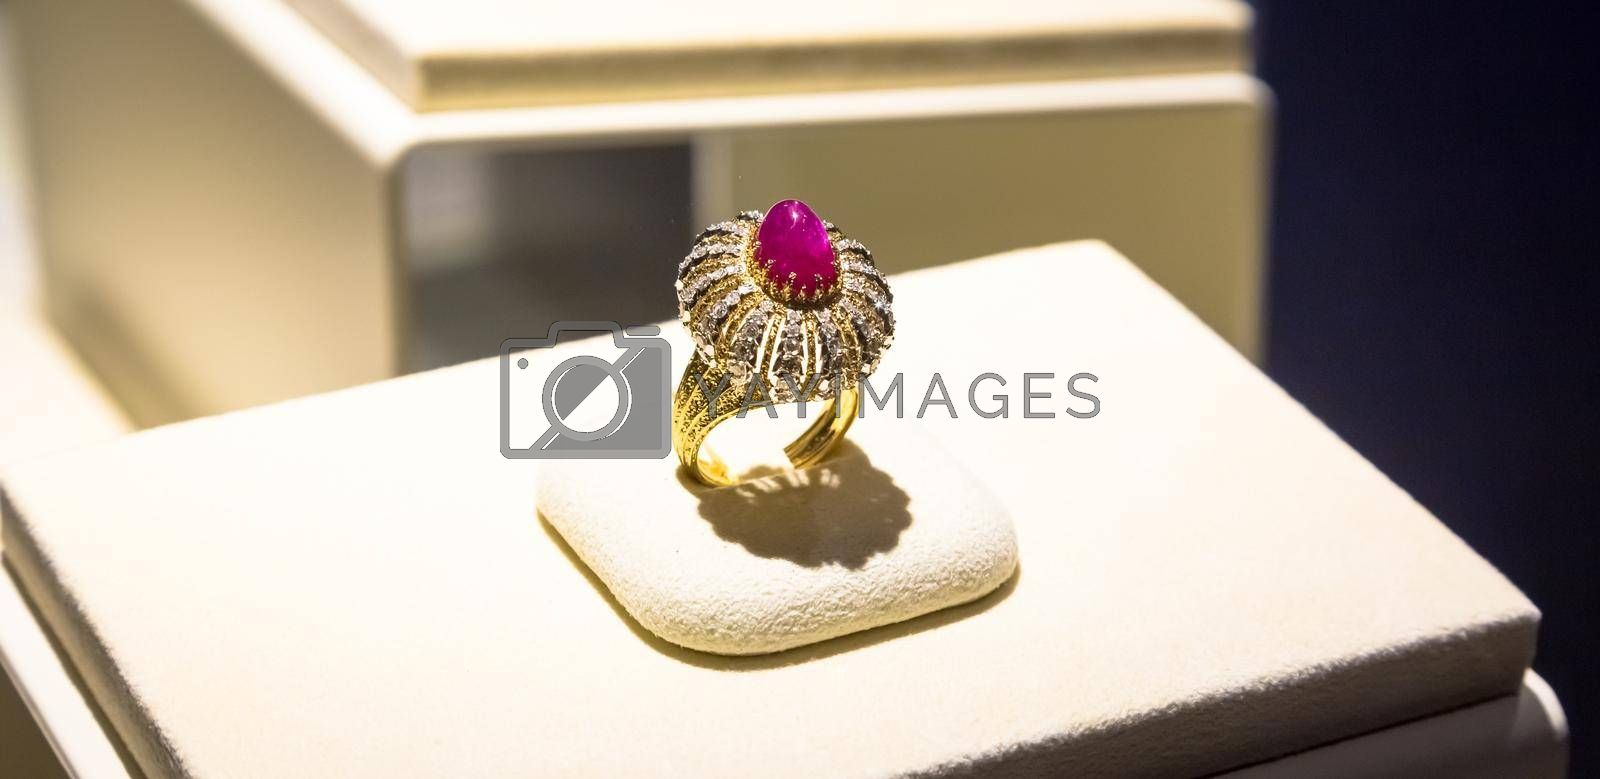 Royalty free image of Luxury ring with giant ruby gem by Perseomedusa